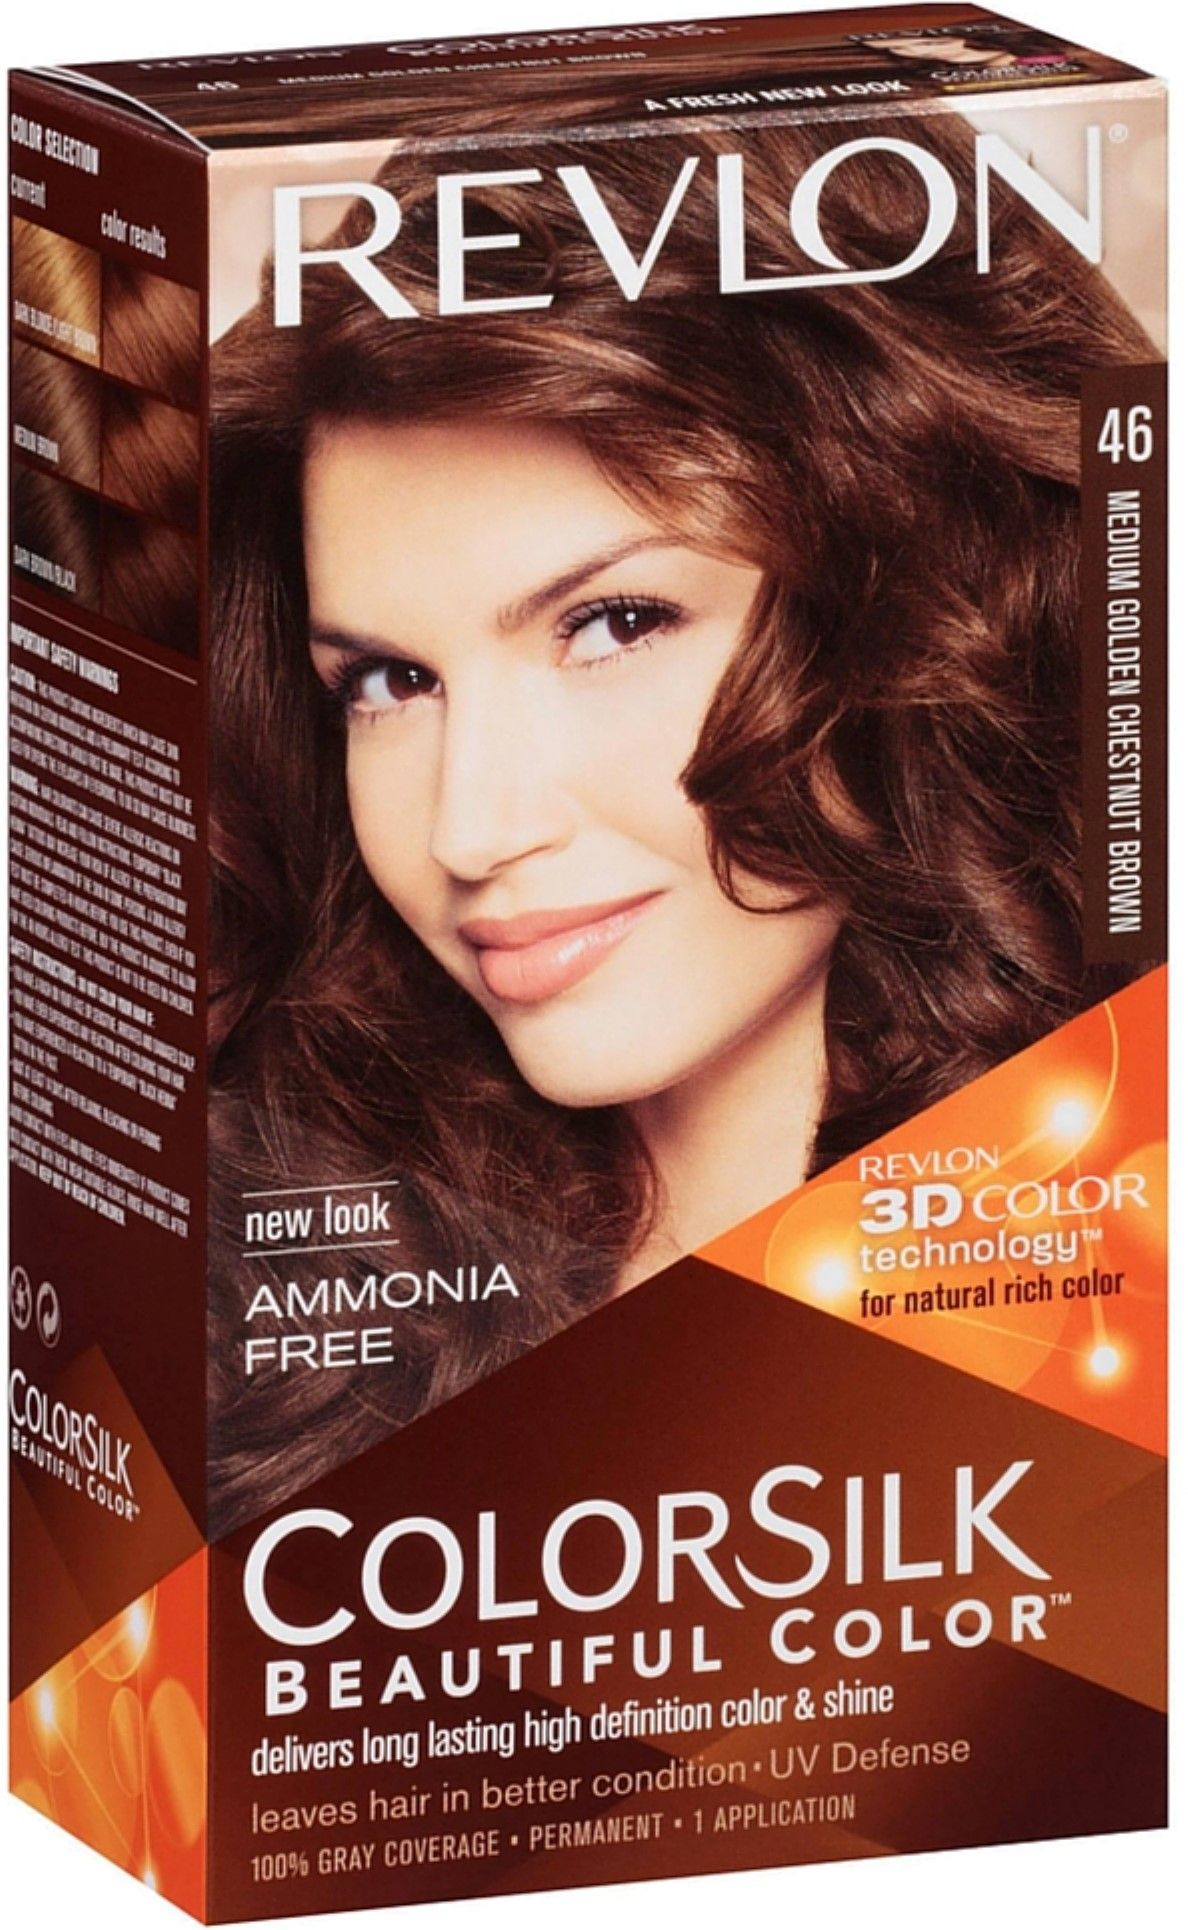 Revlon Colorsilk Beautiful Color Medium Golden Chestnut 46 1 Ea